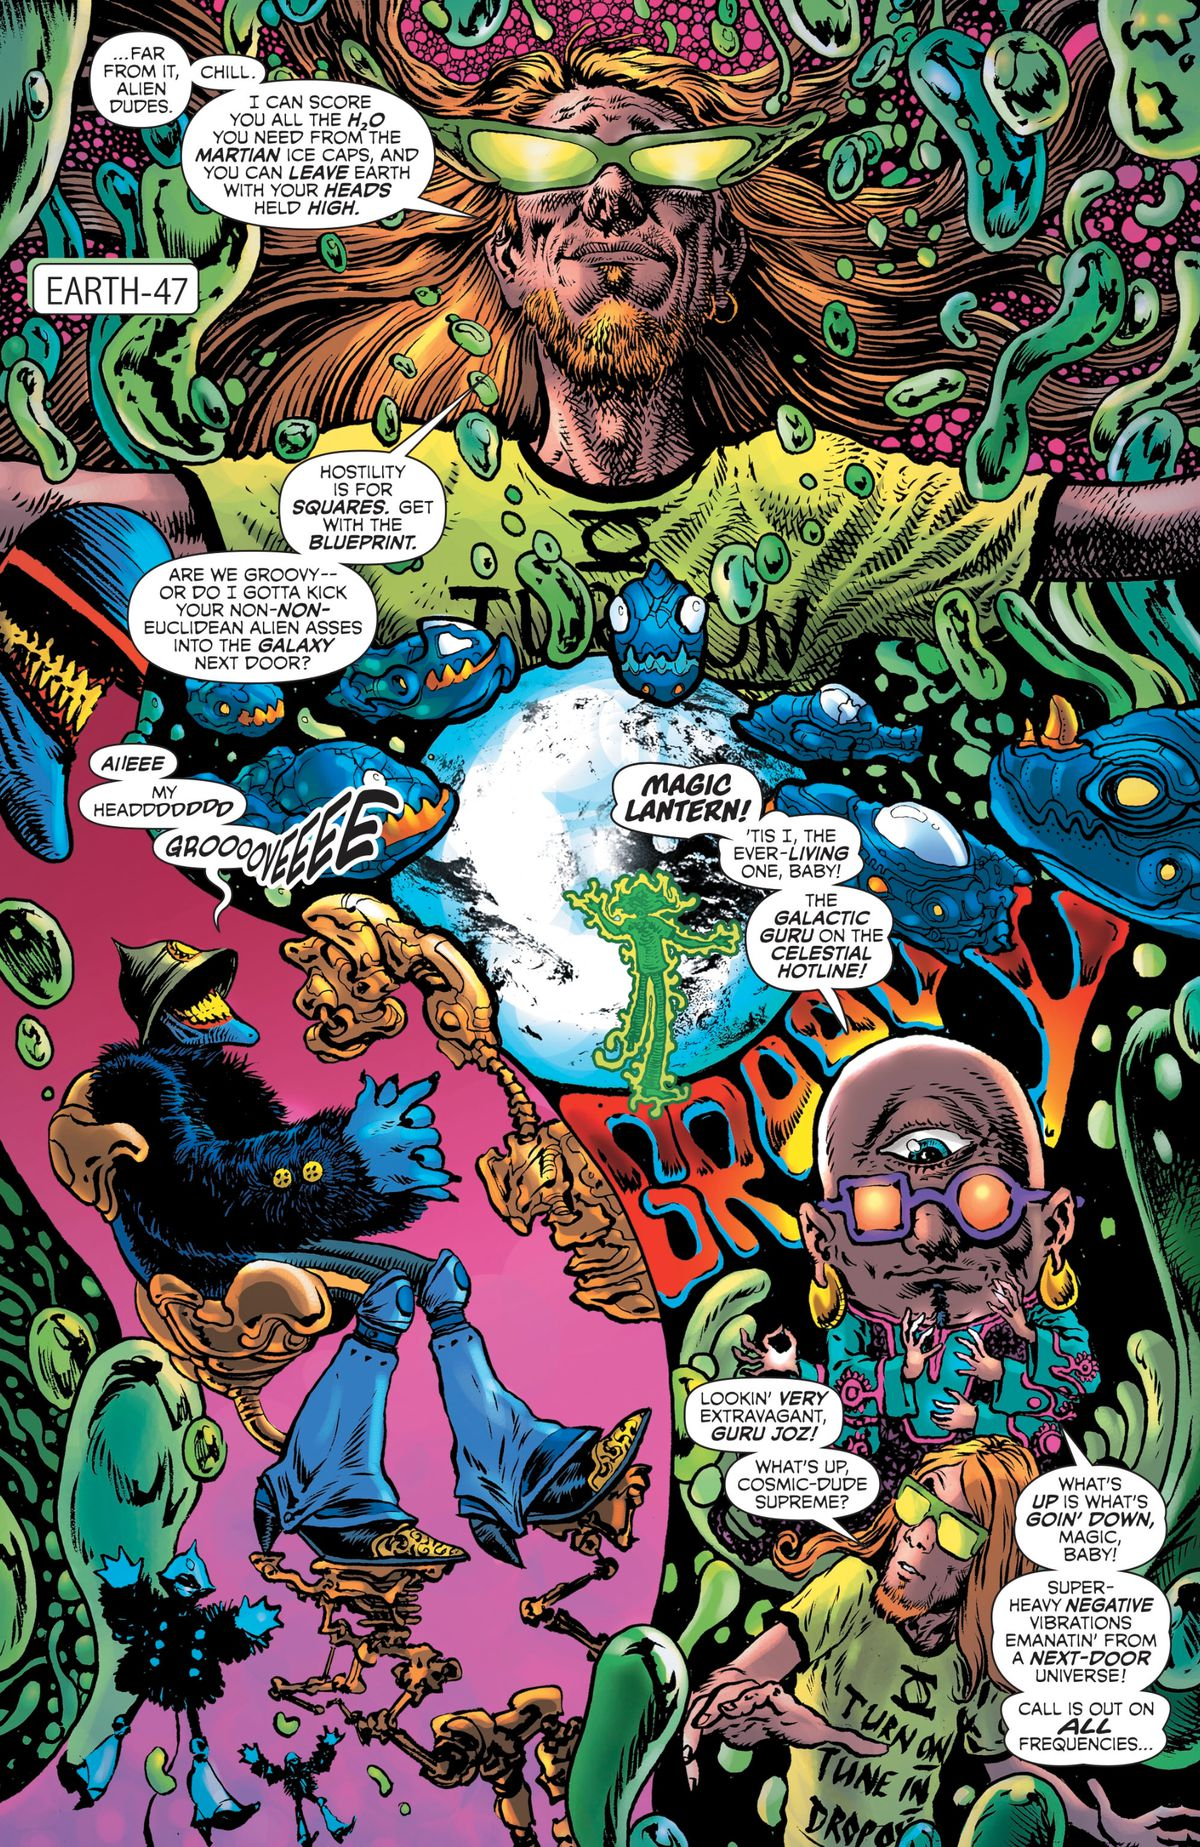 The Green Lantern of the far-out parallel world of Earth-47, Magic Lantern, appears in a psychadelic page where he defeats very Blue Meanie-reminiscent enemy and is contacted by the Ever-Living Guru Joz, who tells him of a multiversal threat.